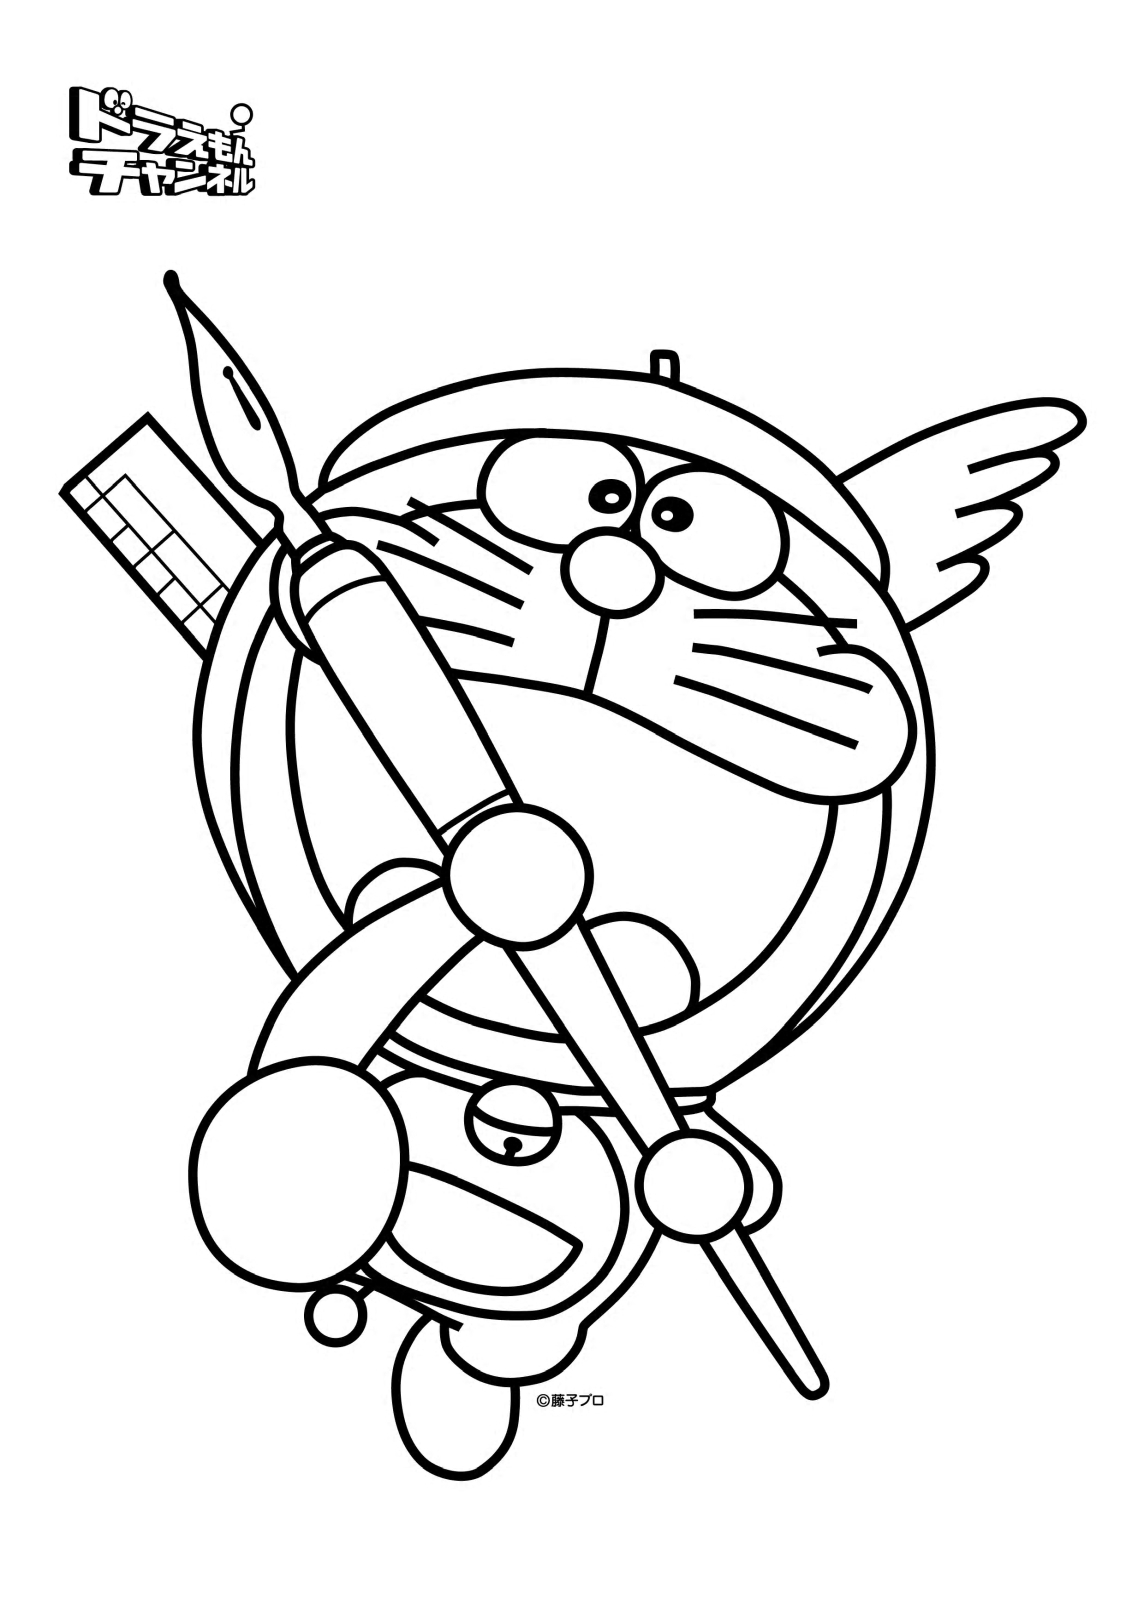 Coloring book doraemon for Disegni da colorare doraemon